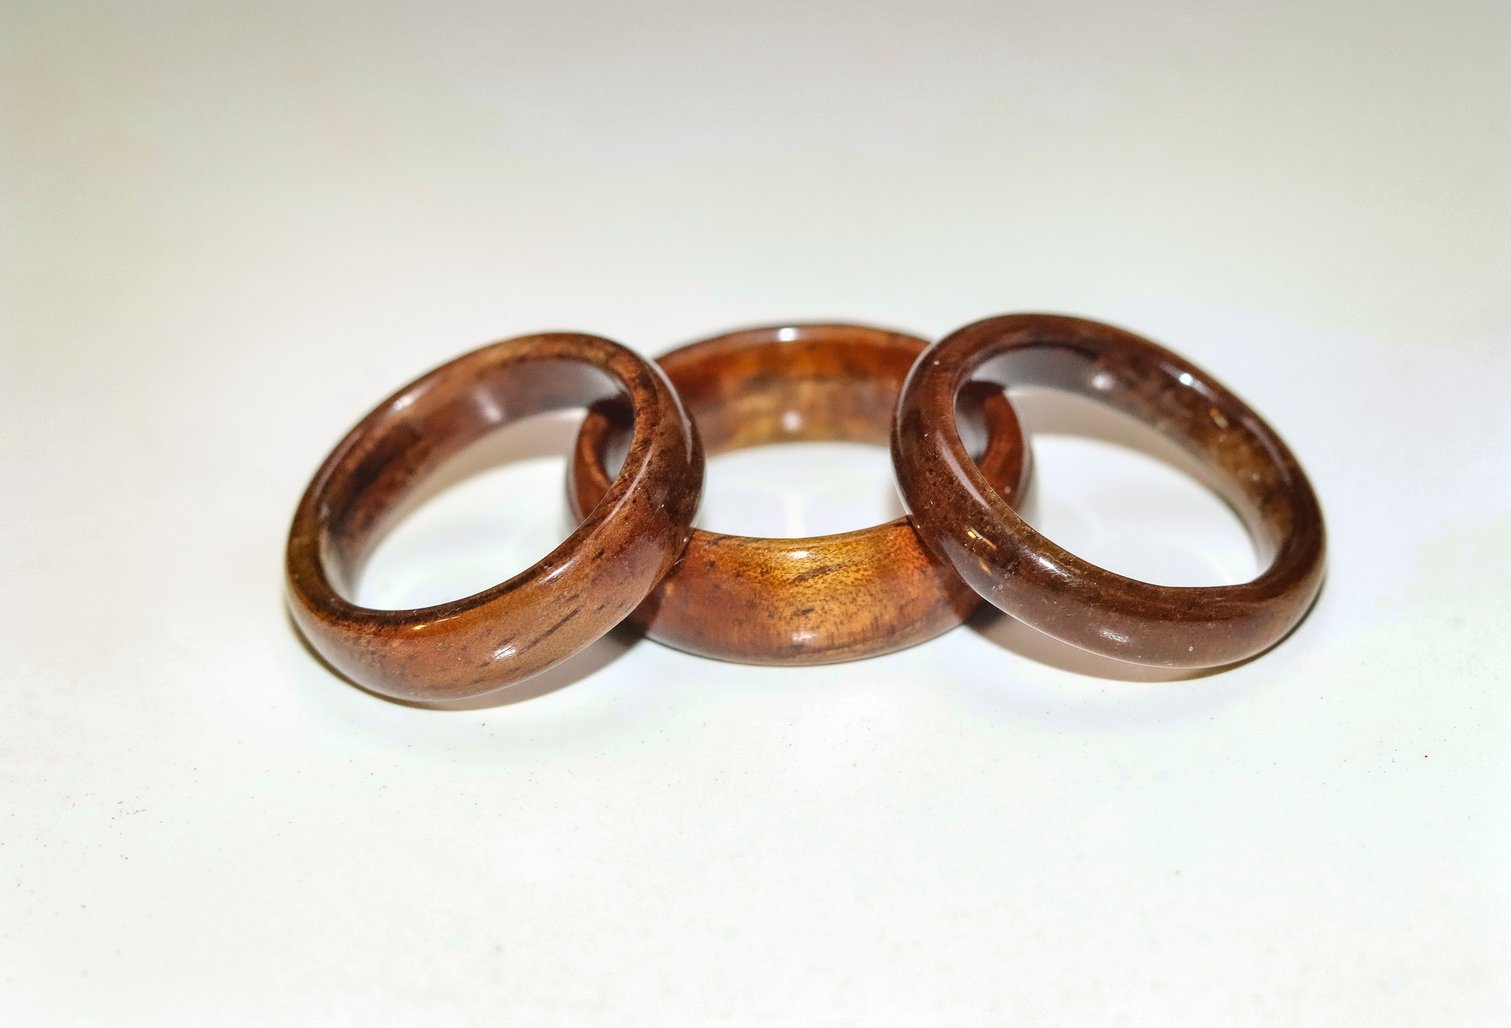 What Is It About Koa Rings That Makes Them so Special?